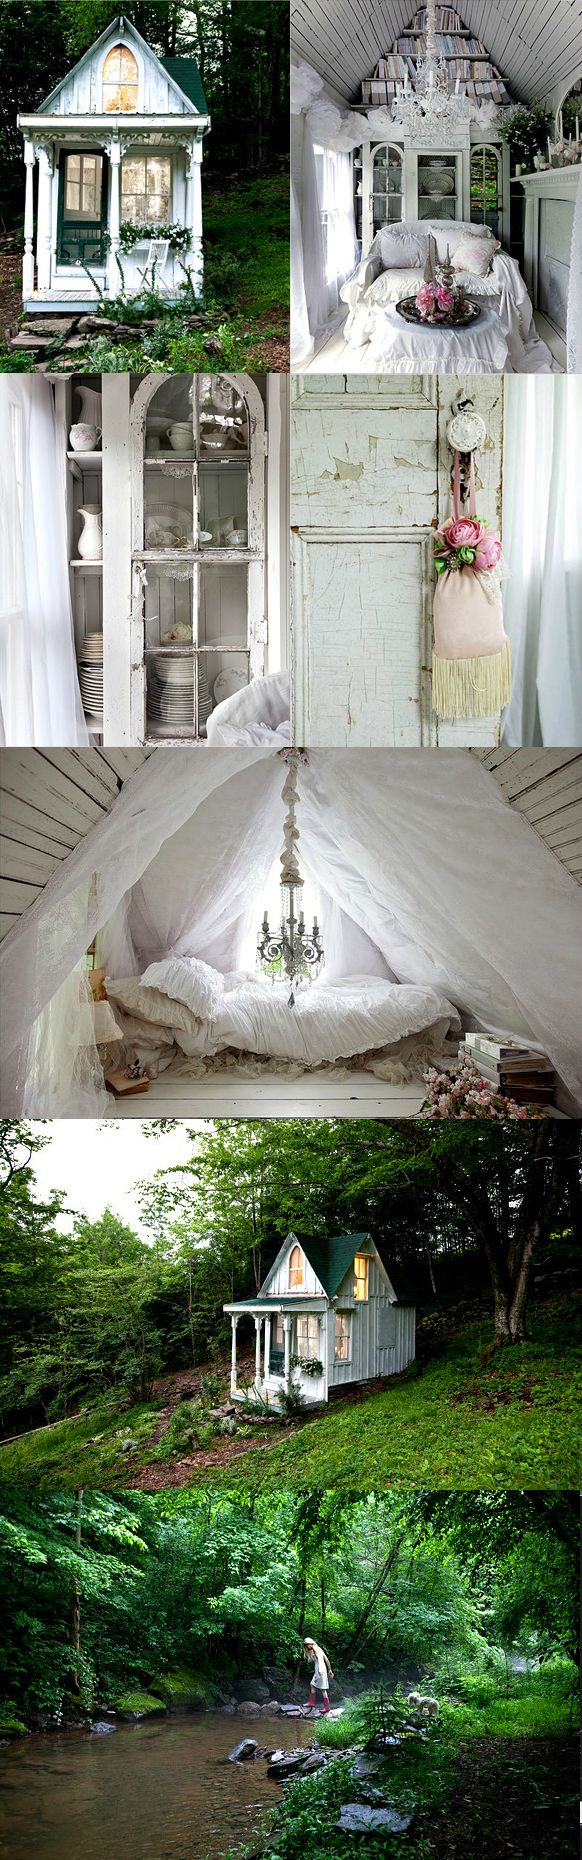 If I ever had the space to build a place all my own that boys aren't allowed in, it would look like this.